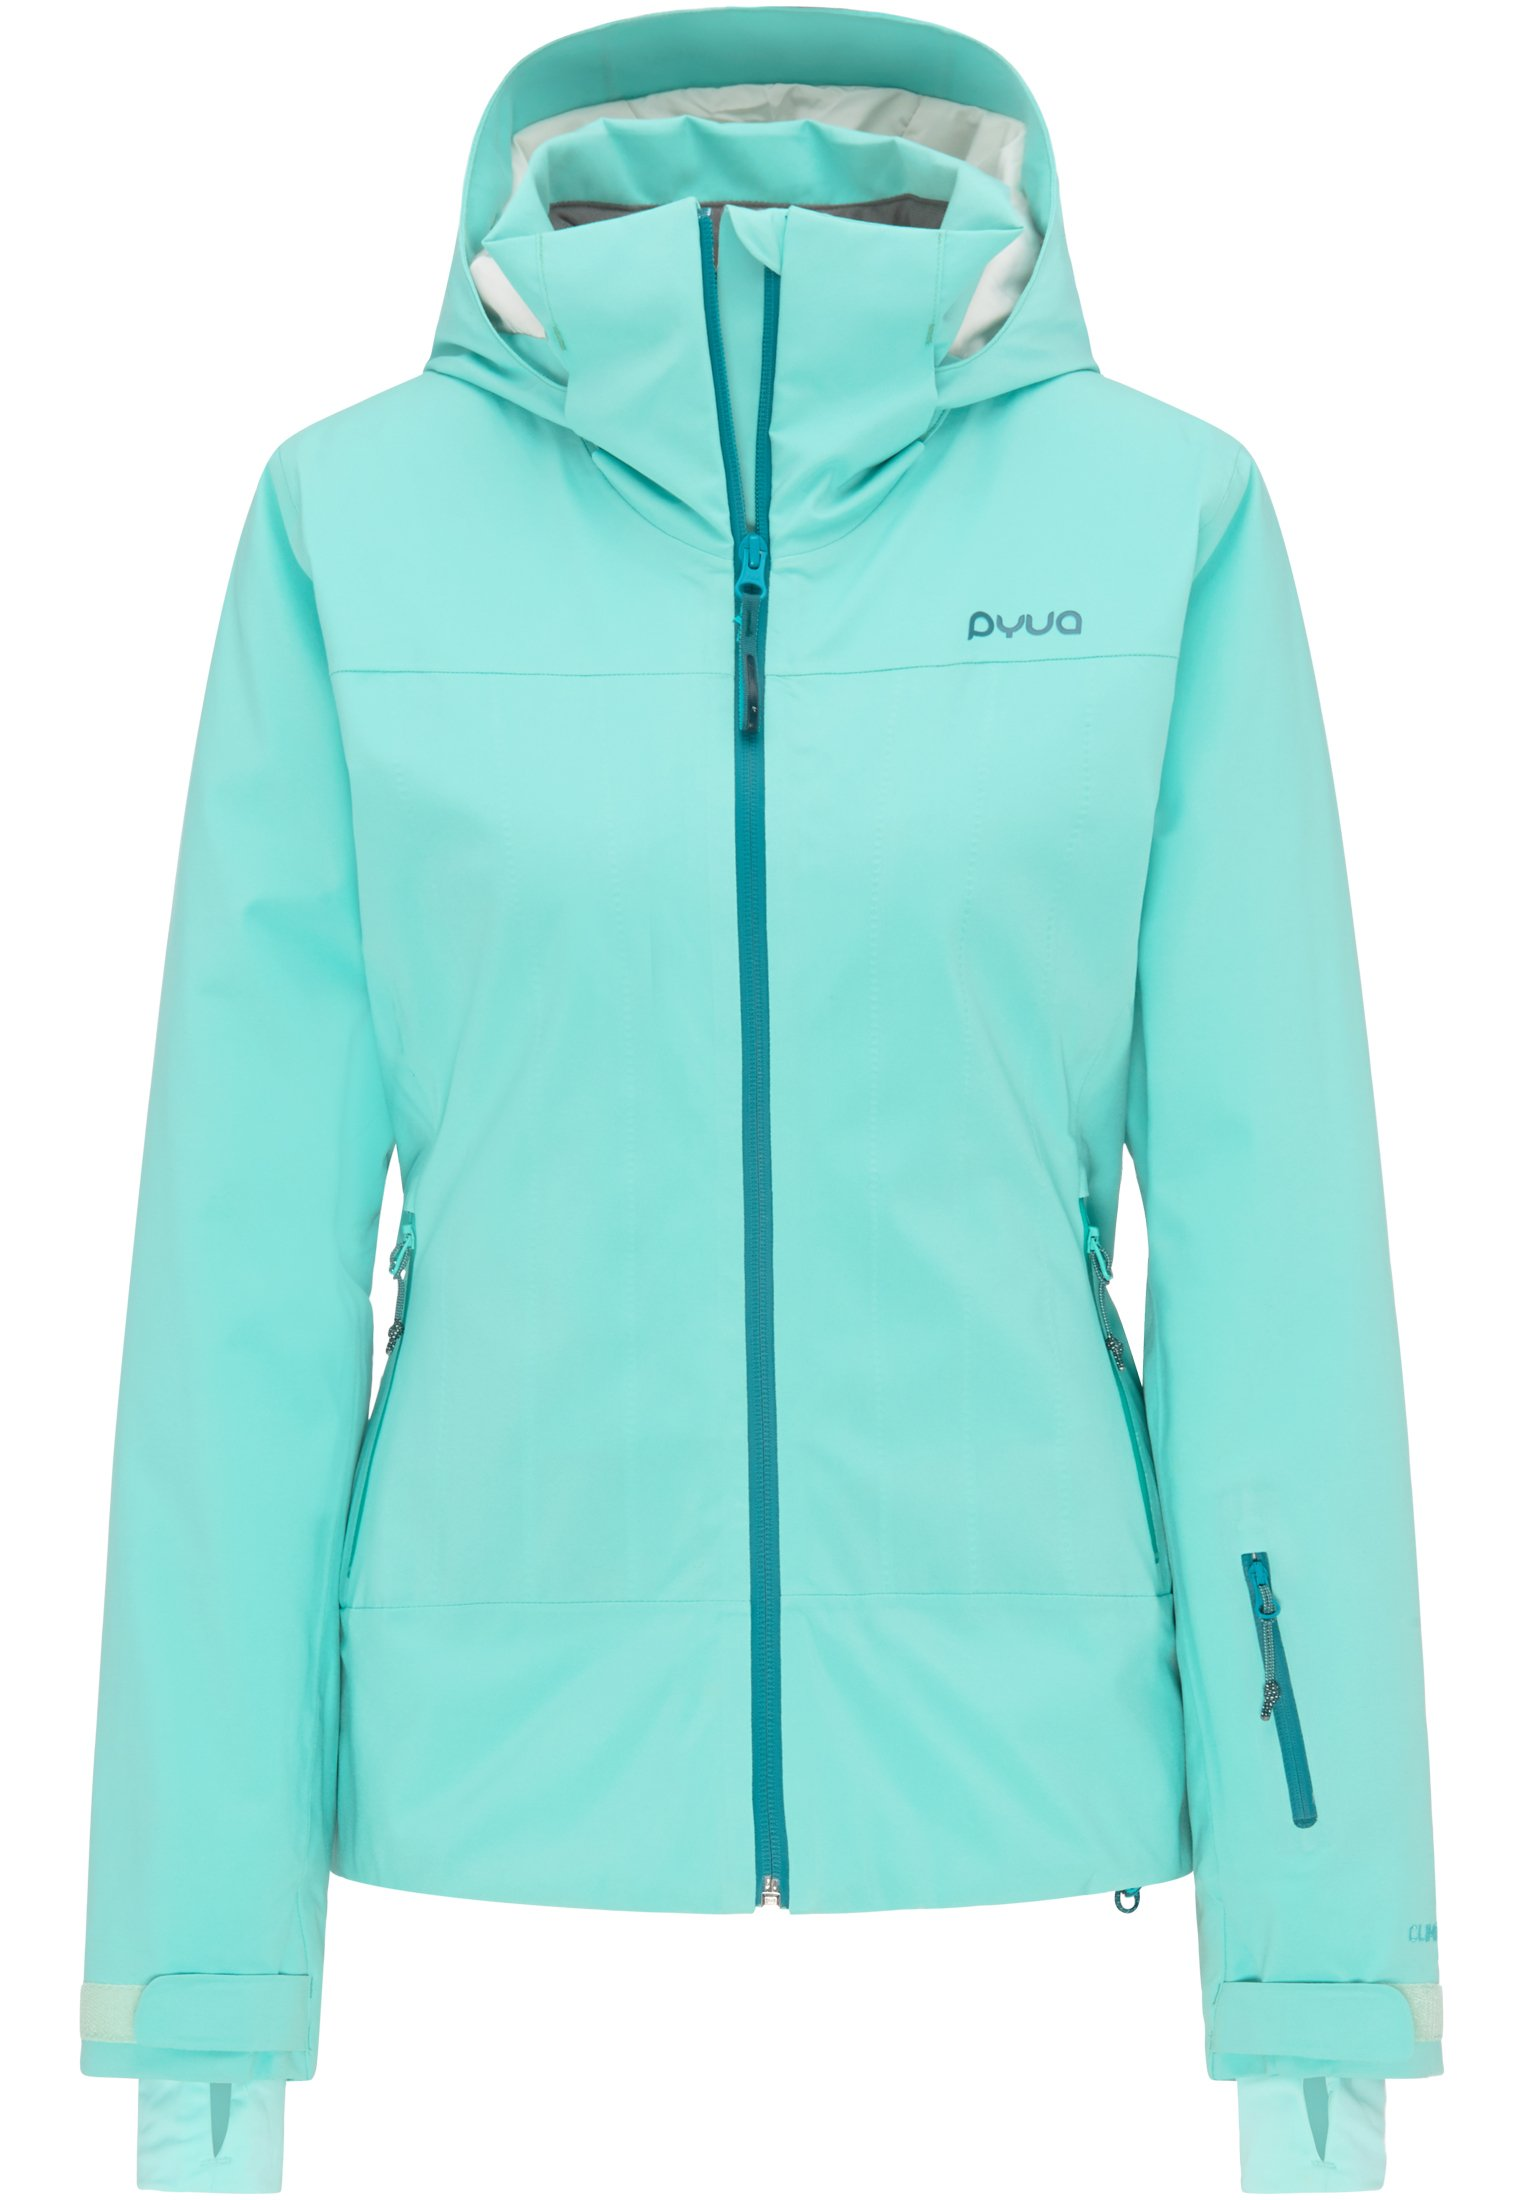 PYUA ski jacket waterproof ladies hardshell rain jacket